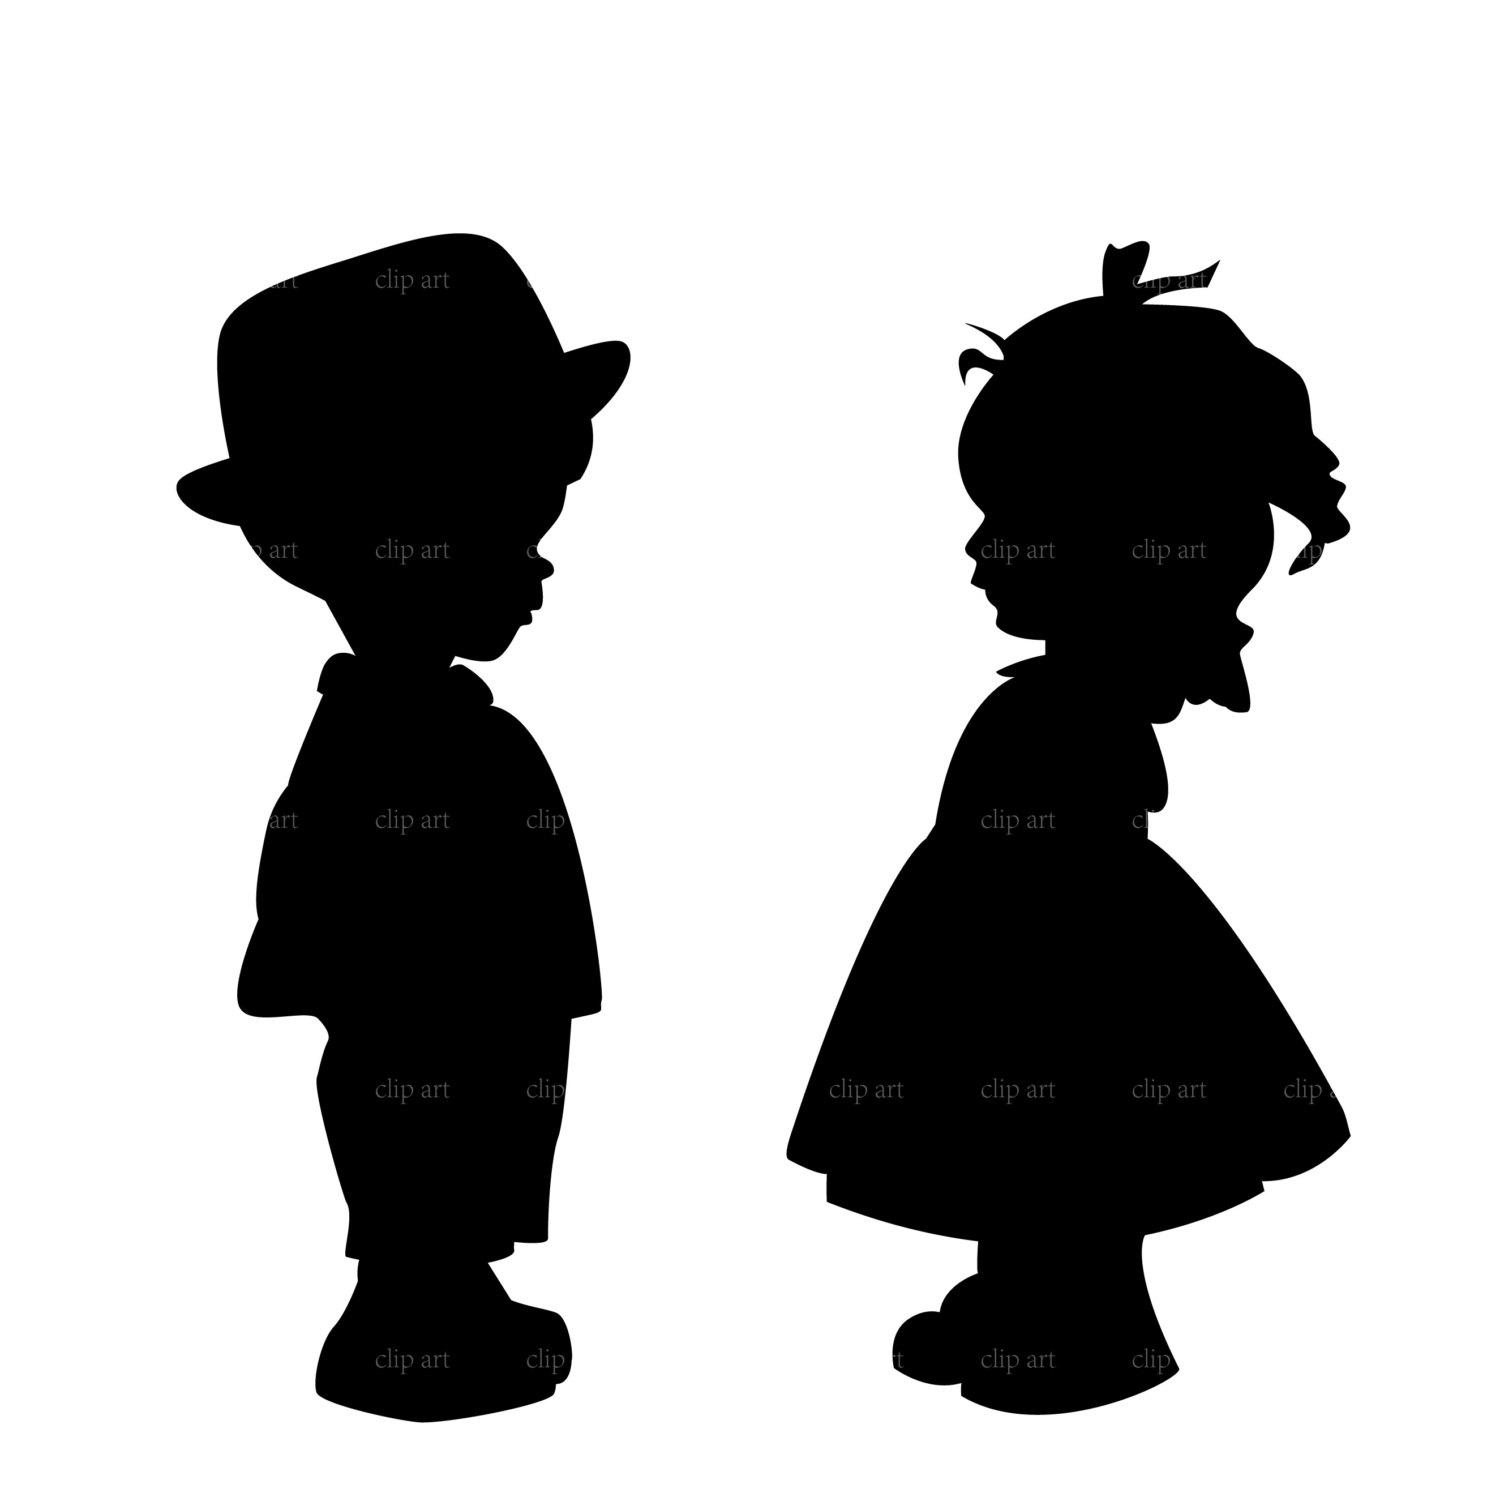 Fishing at getdrawings com. Boy clipart silhouette